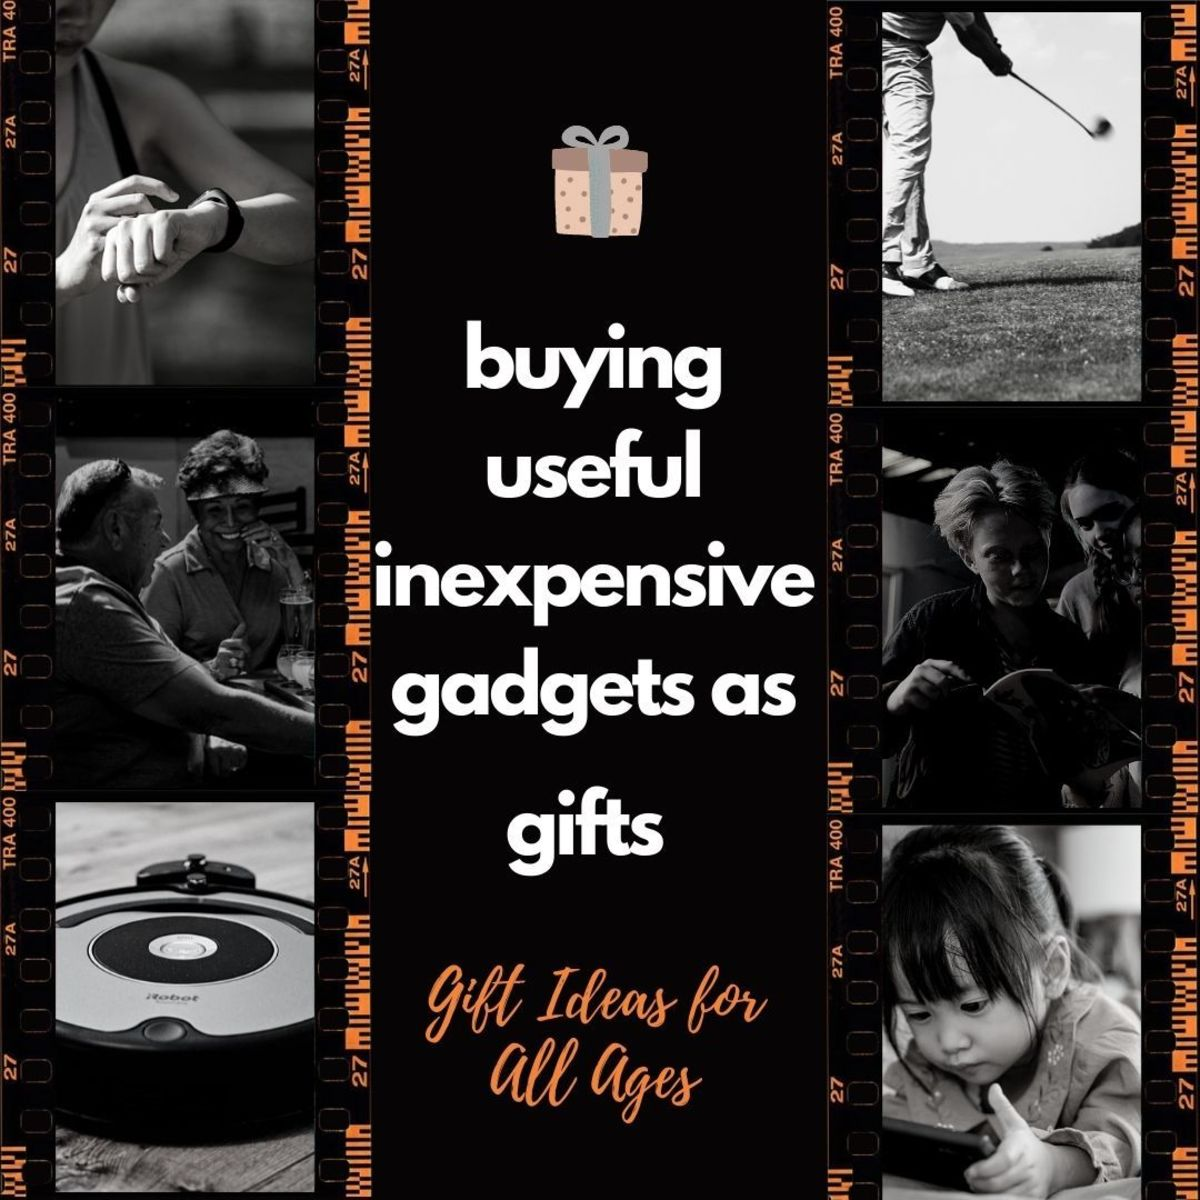 Low-Tech and Useful Inexpensive Gadgets - Gift Ideas for All Ages